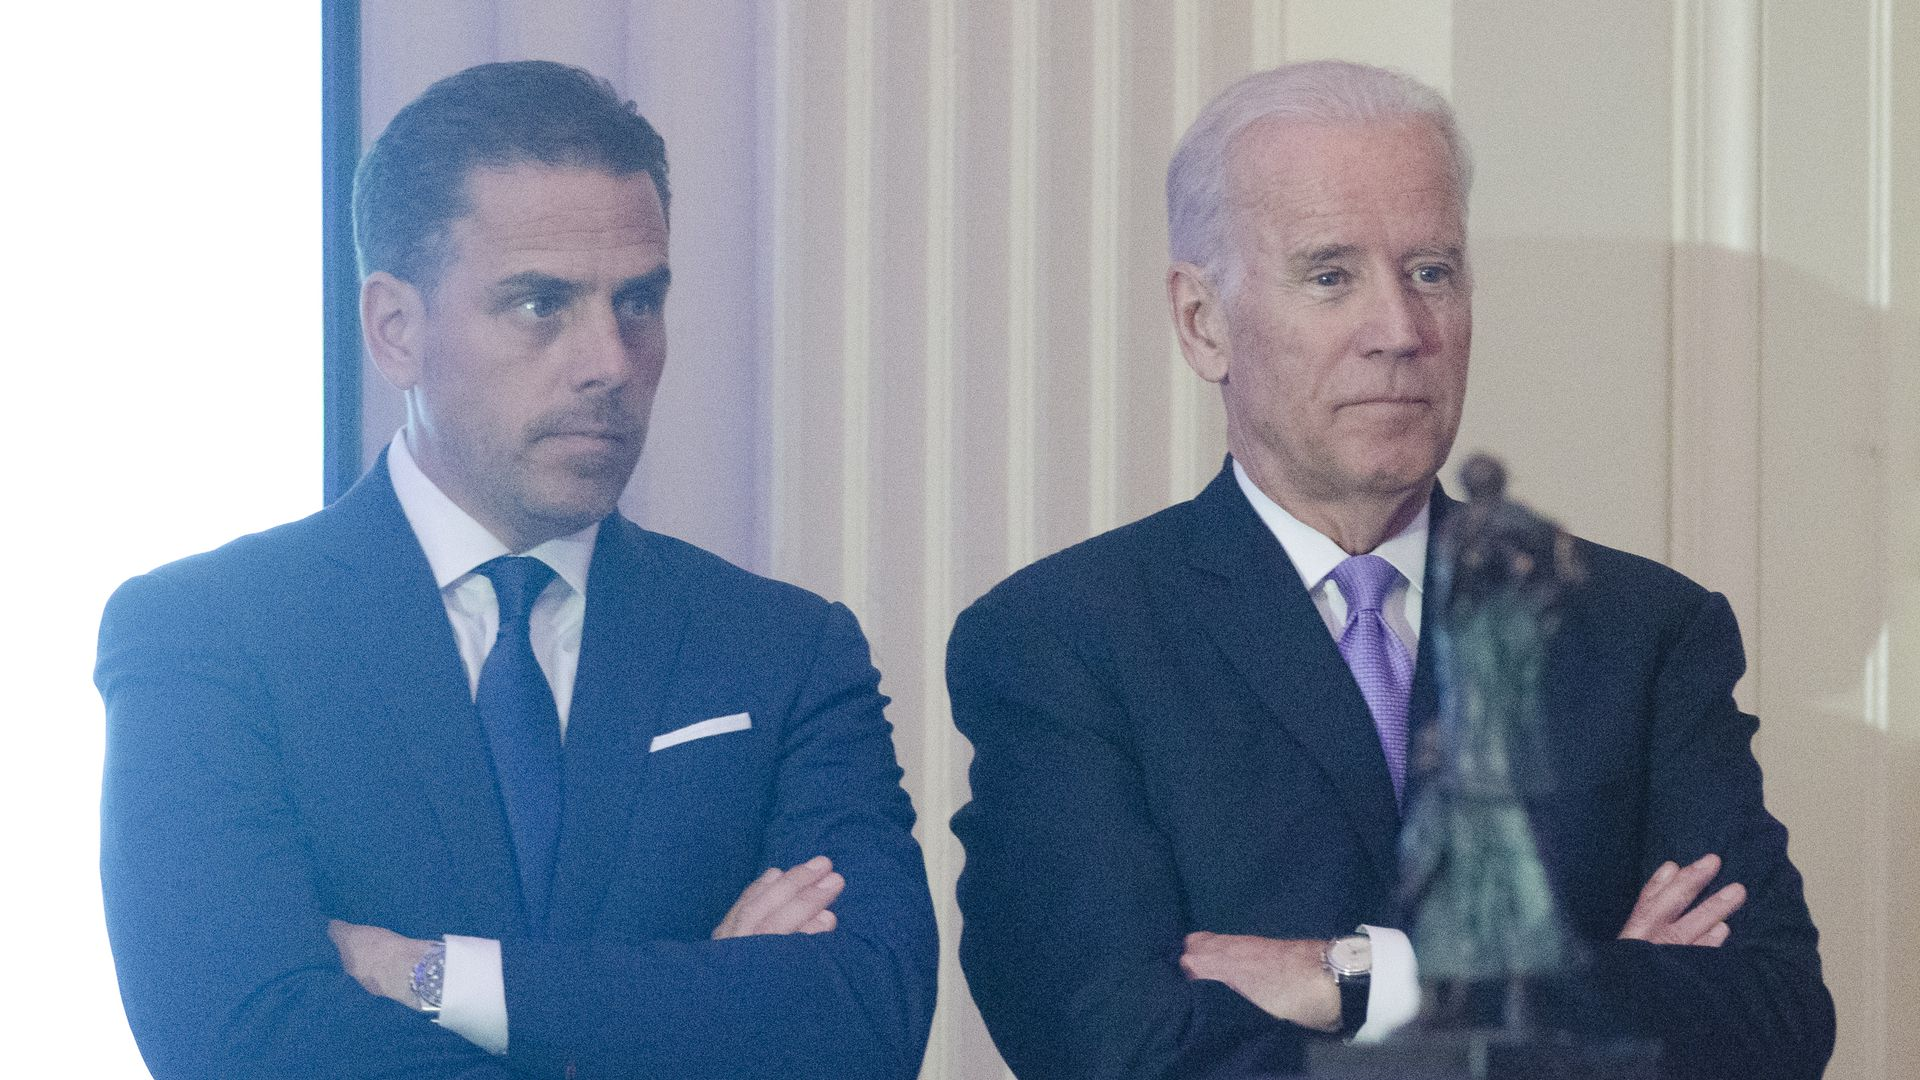 Former Vice President Joe Biden and his son Hunter Biden